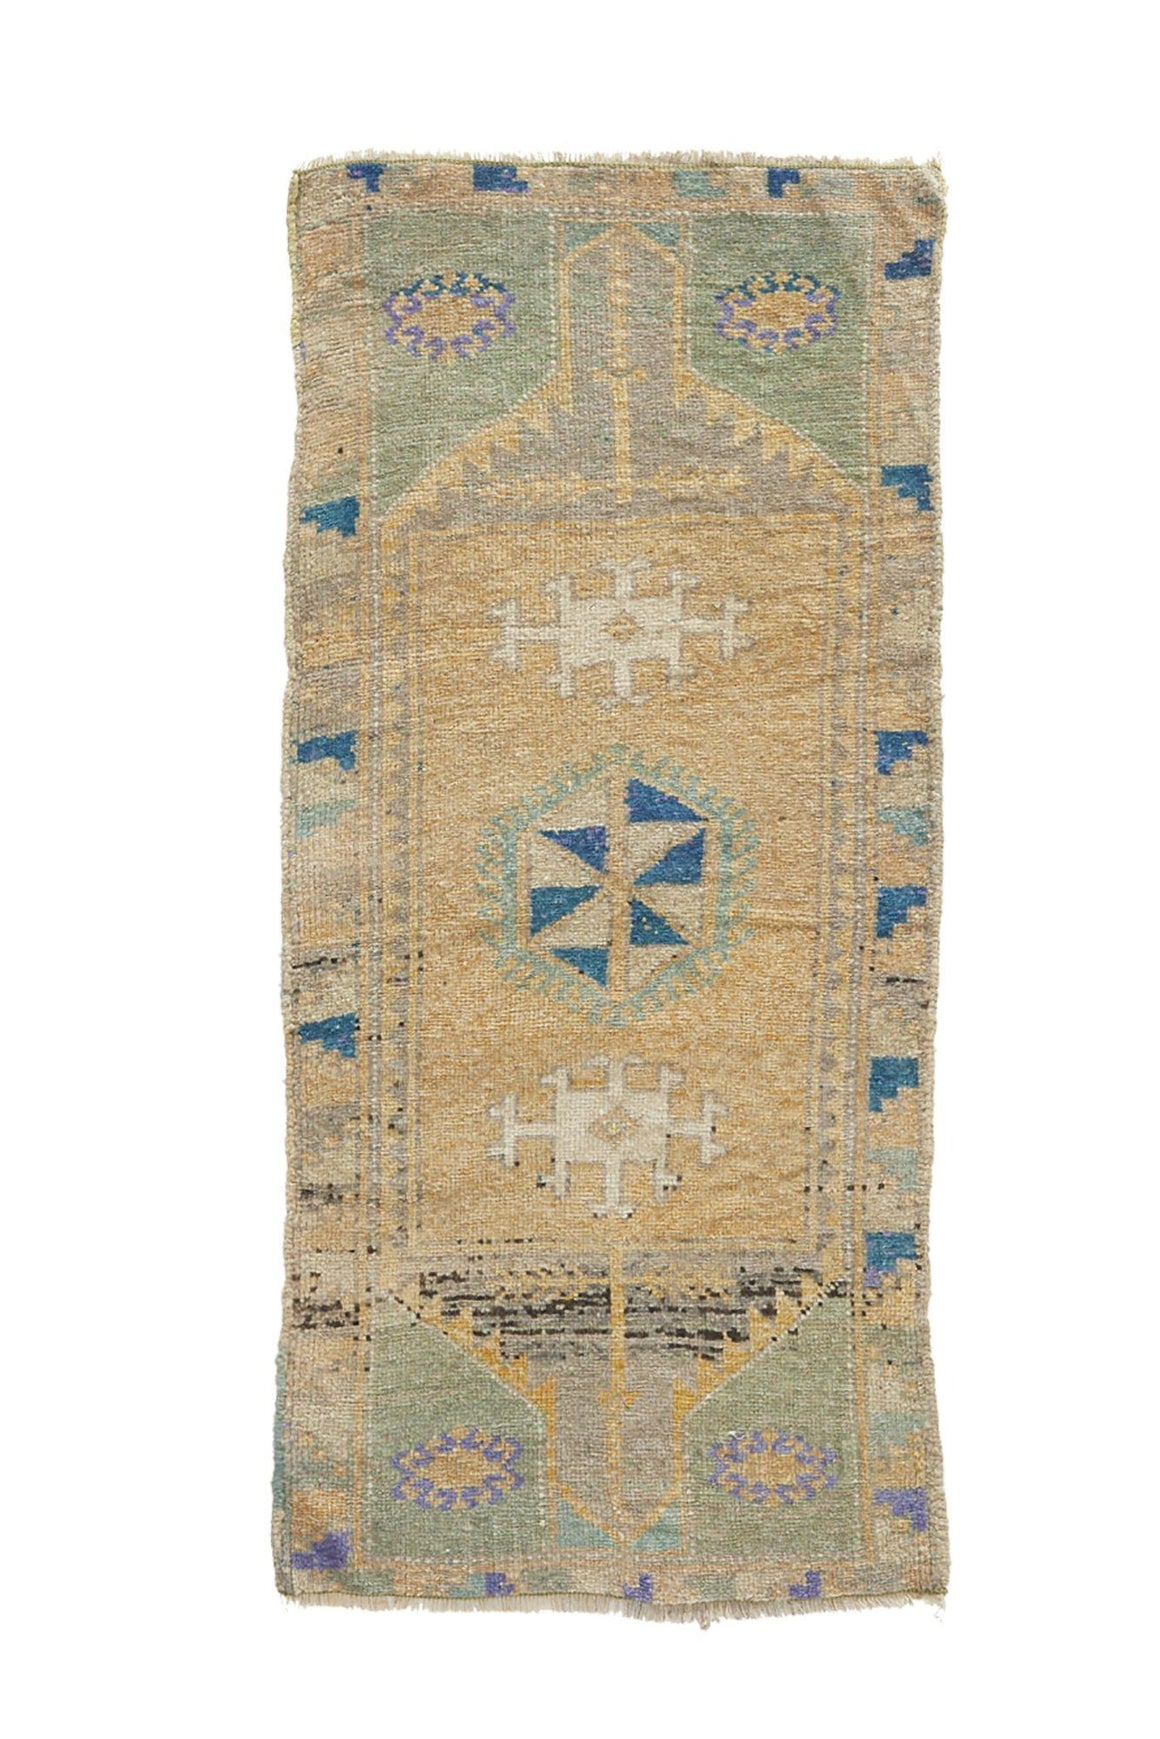 "No. 938 Mini Rug - 1'8"" x 3'8"" - Canary Lane - Curated Textiles"